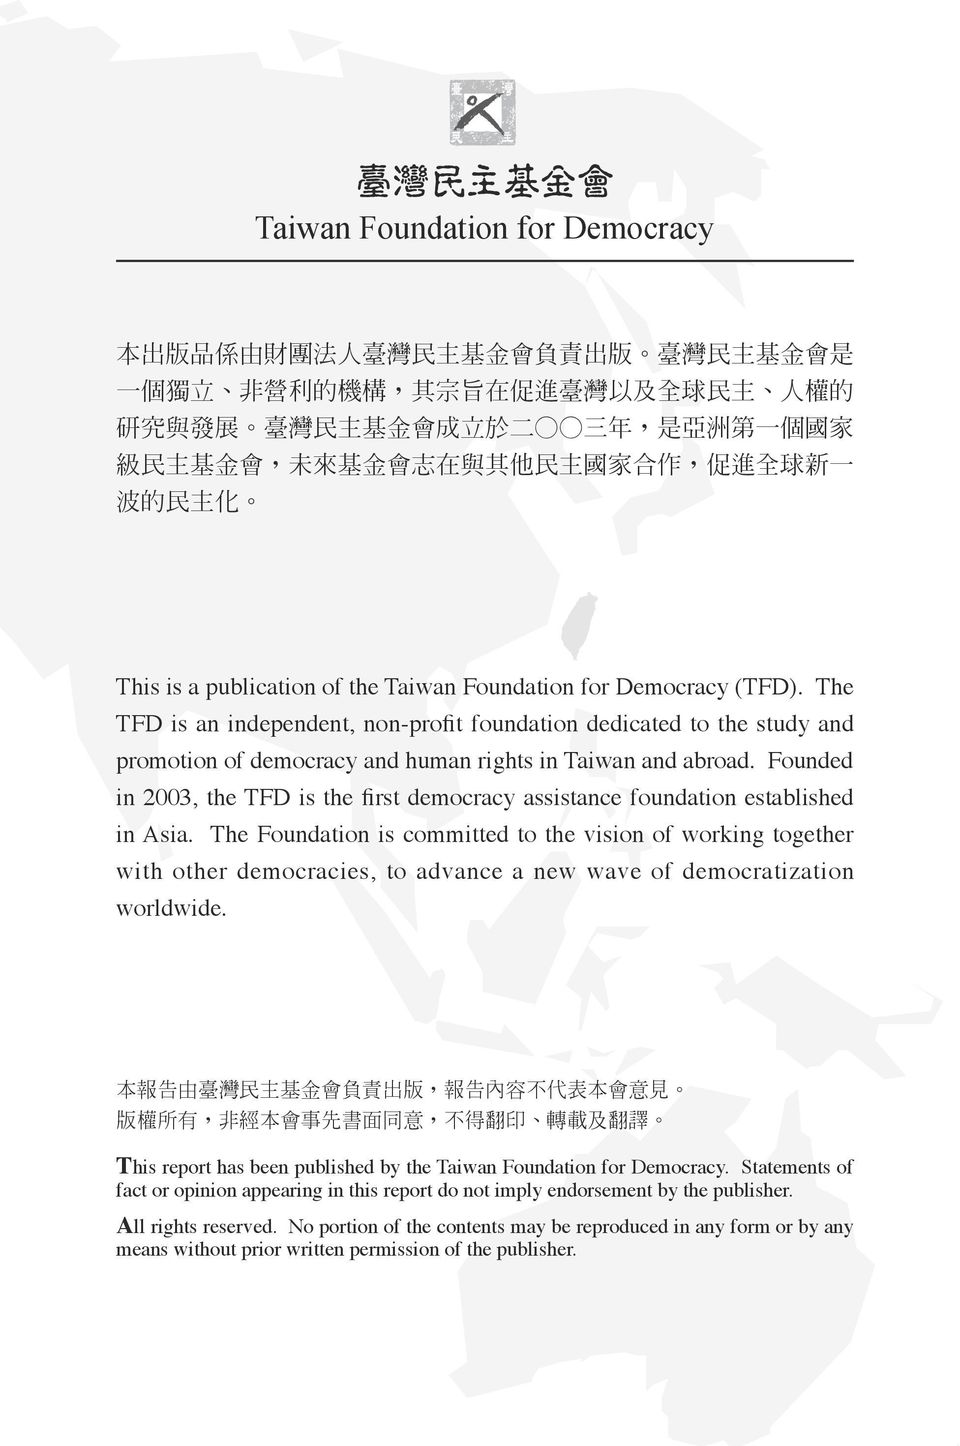 The TFD is an independent, non-profit foundation dedicated to the study and promotion of democracy and human rights in Taiwan and abroad.